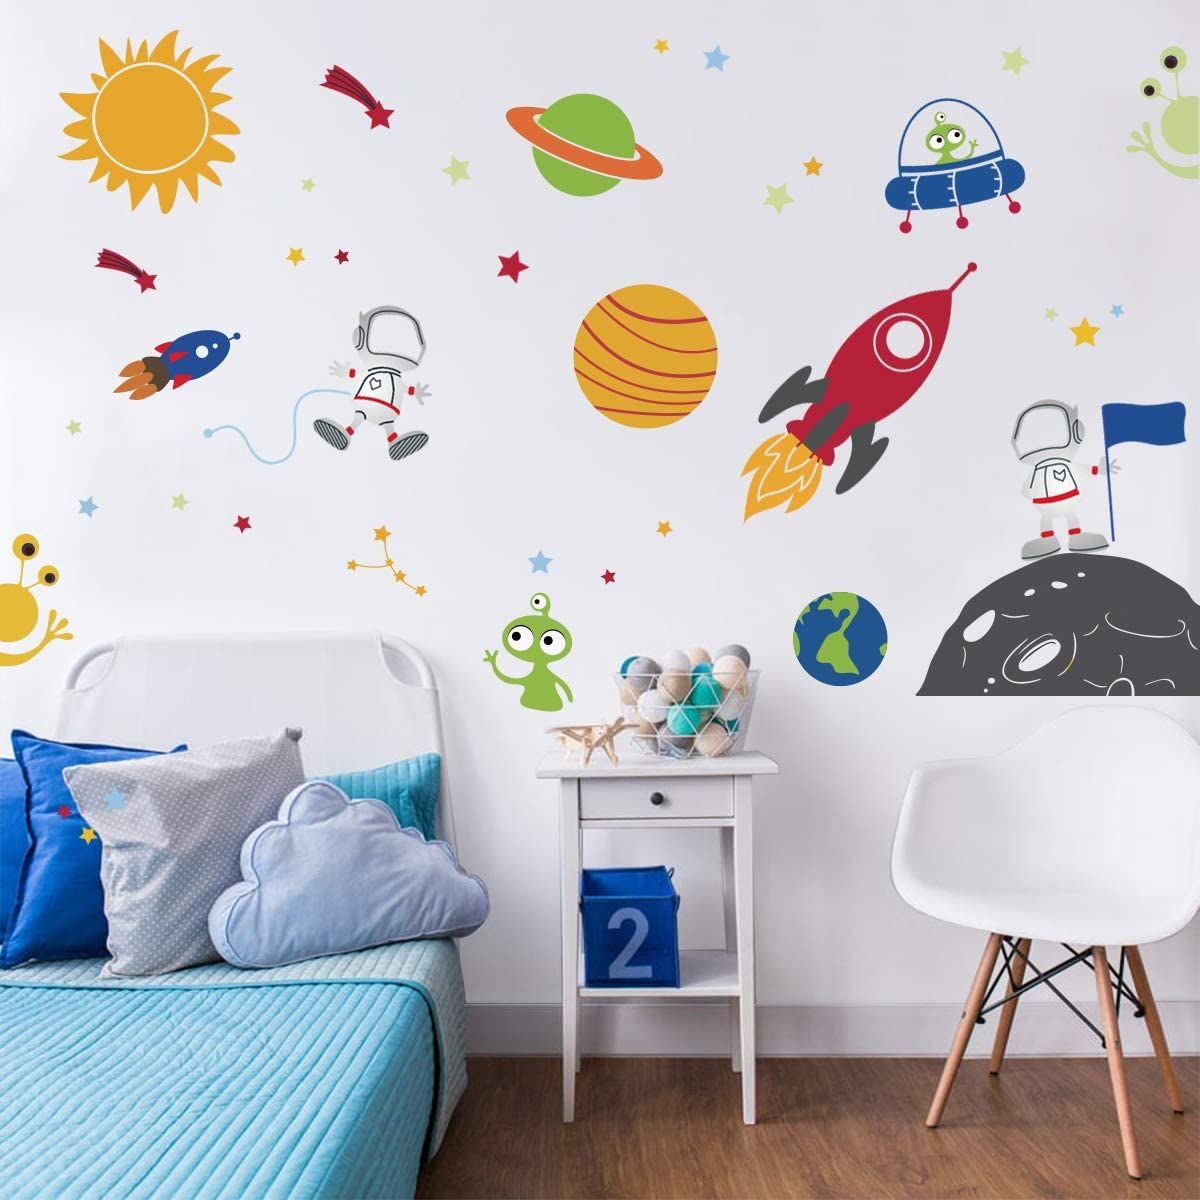 Baby Room Wall Decor 68 x 74 Outer Space Wall Stickers Astronaut Wall Decals Planets and Galaxy Nursery Decals Nursery Wall Decals